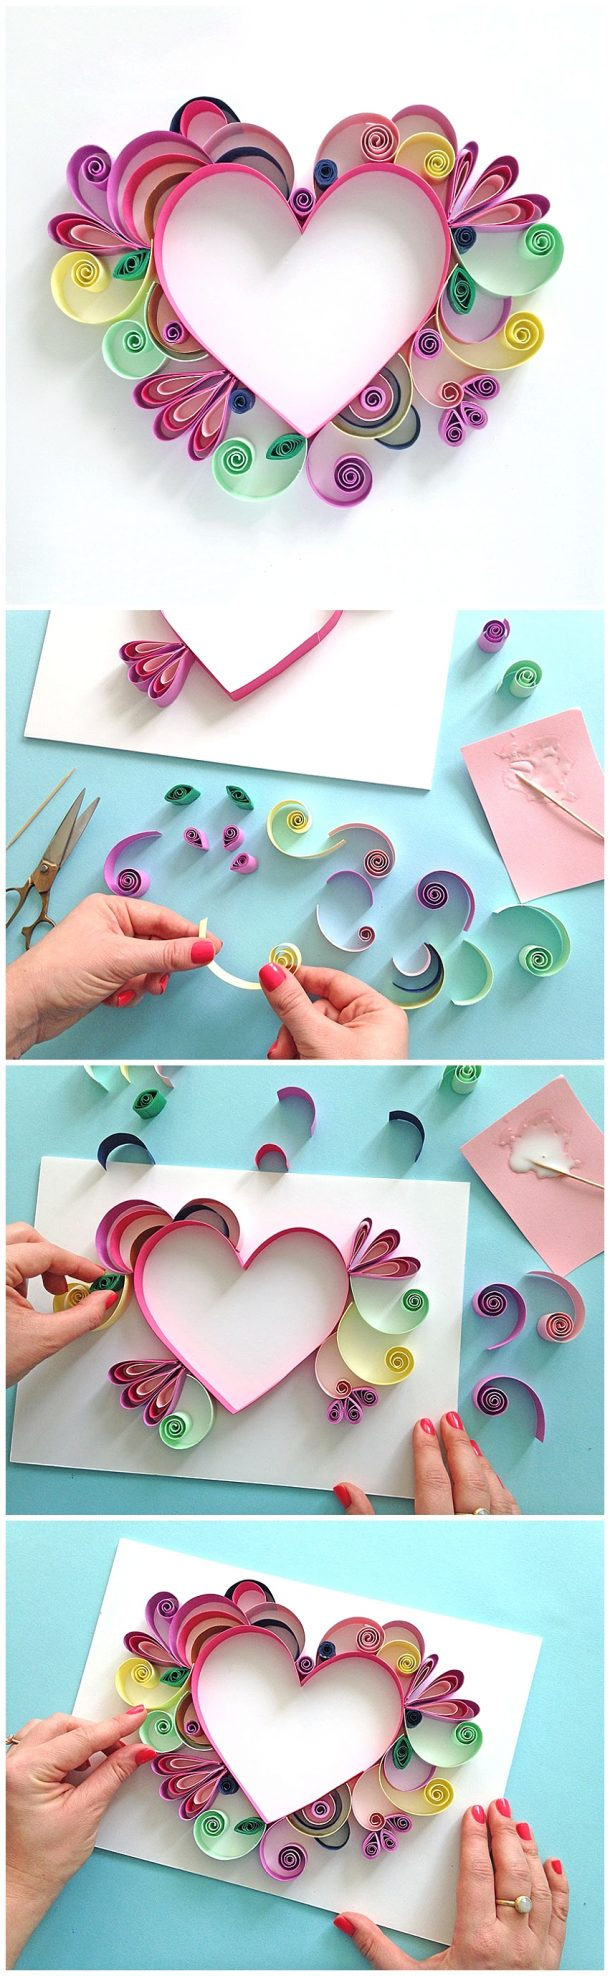 Learn How to Quill a darling Heart Shaped Handmade work of art to frame or use as a pretty handmade Greeting Card!  Paper Craft Gift Idea via Paper Chase